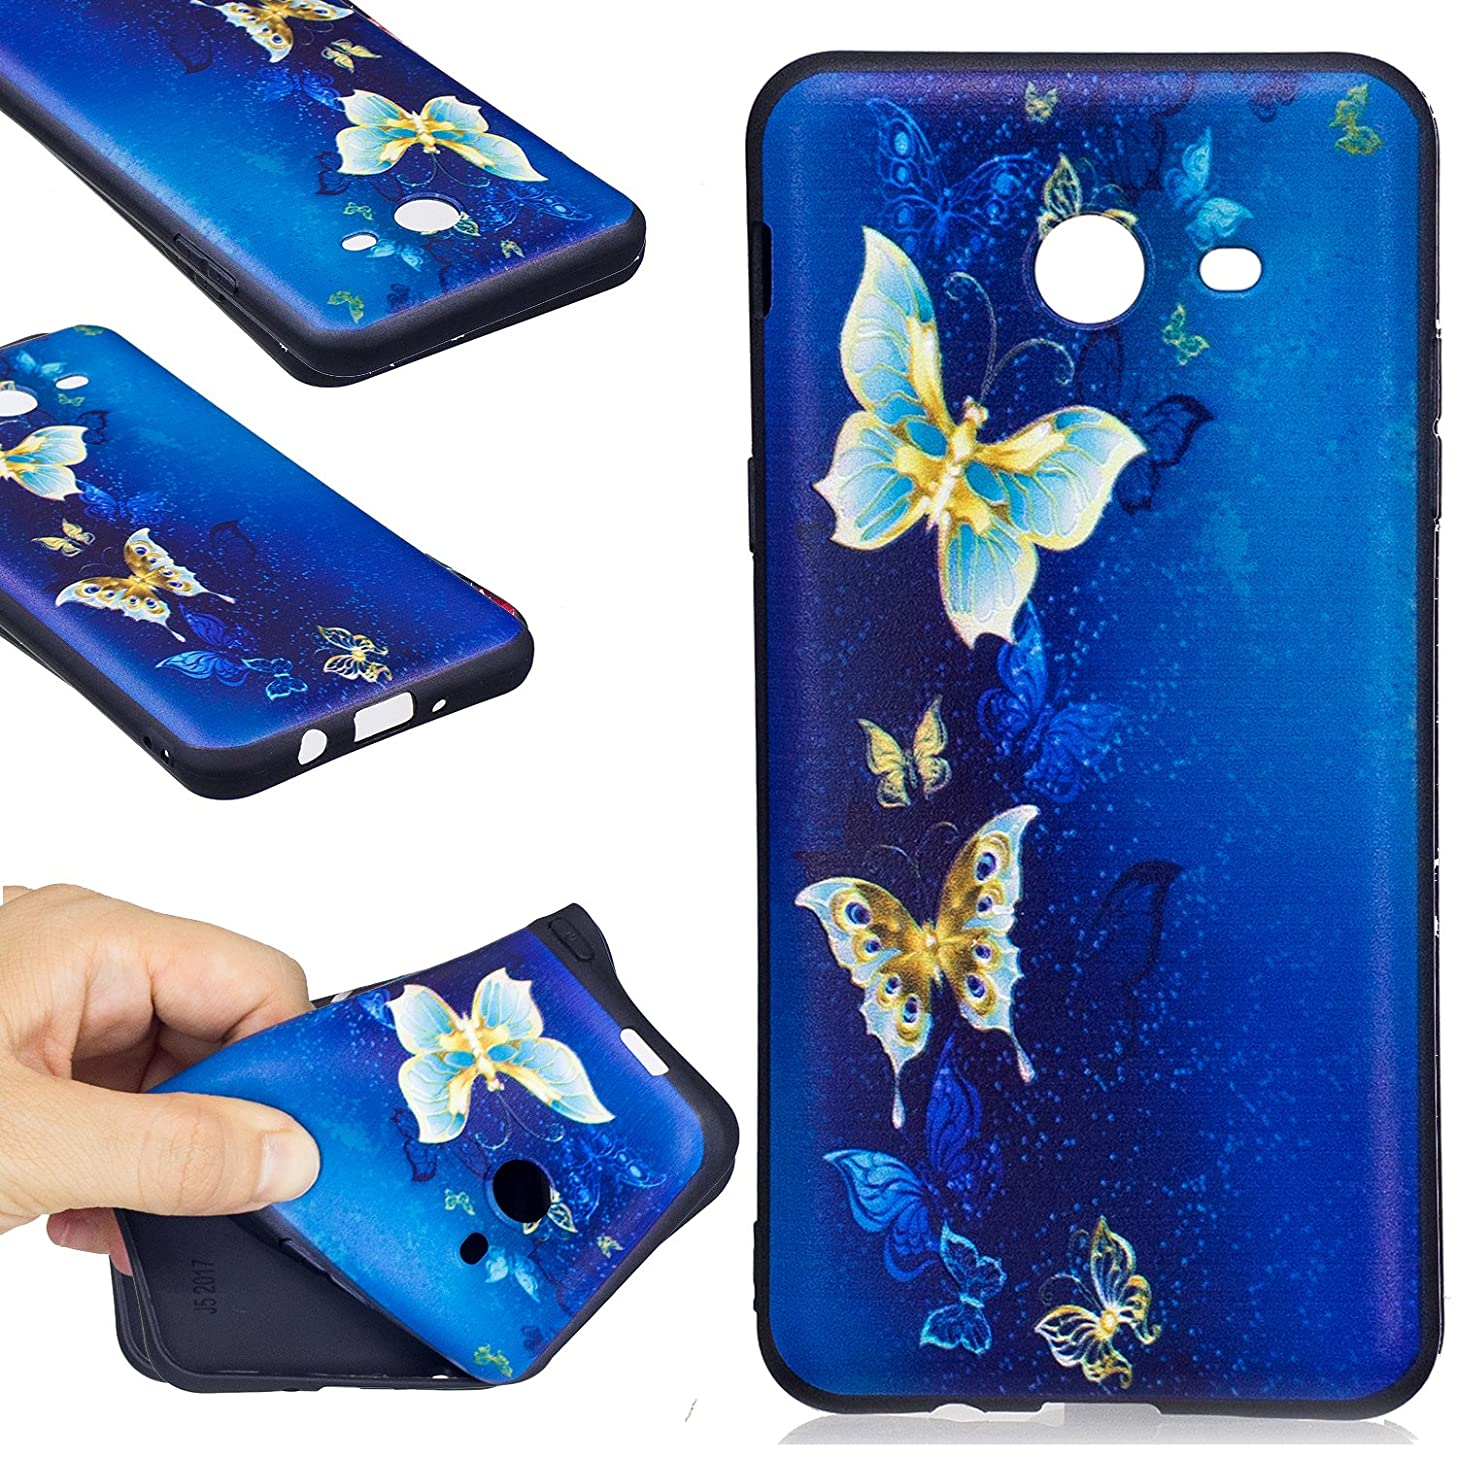 Galaxy J5 2017 Case, FIREFISH Flexible TPU Gel Silicone Embossed Printing [Anti Slip] [Scratch Resistances] Easy Grip Back Cover Shell for Samsung Galaxy J5 2017